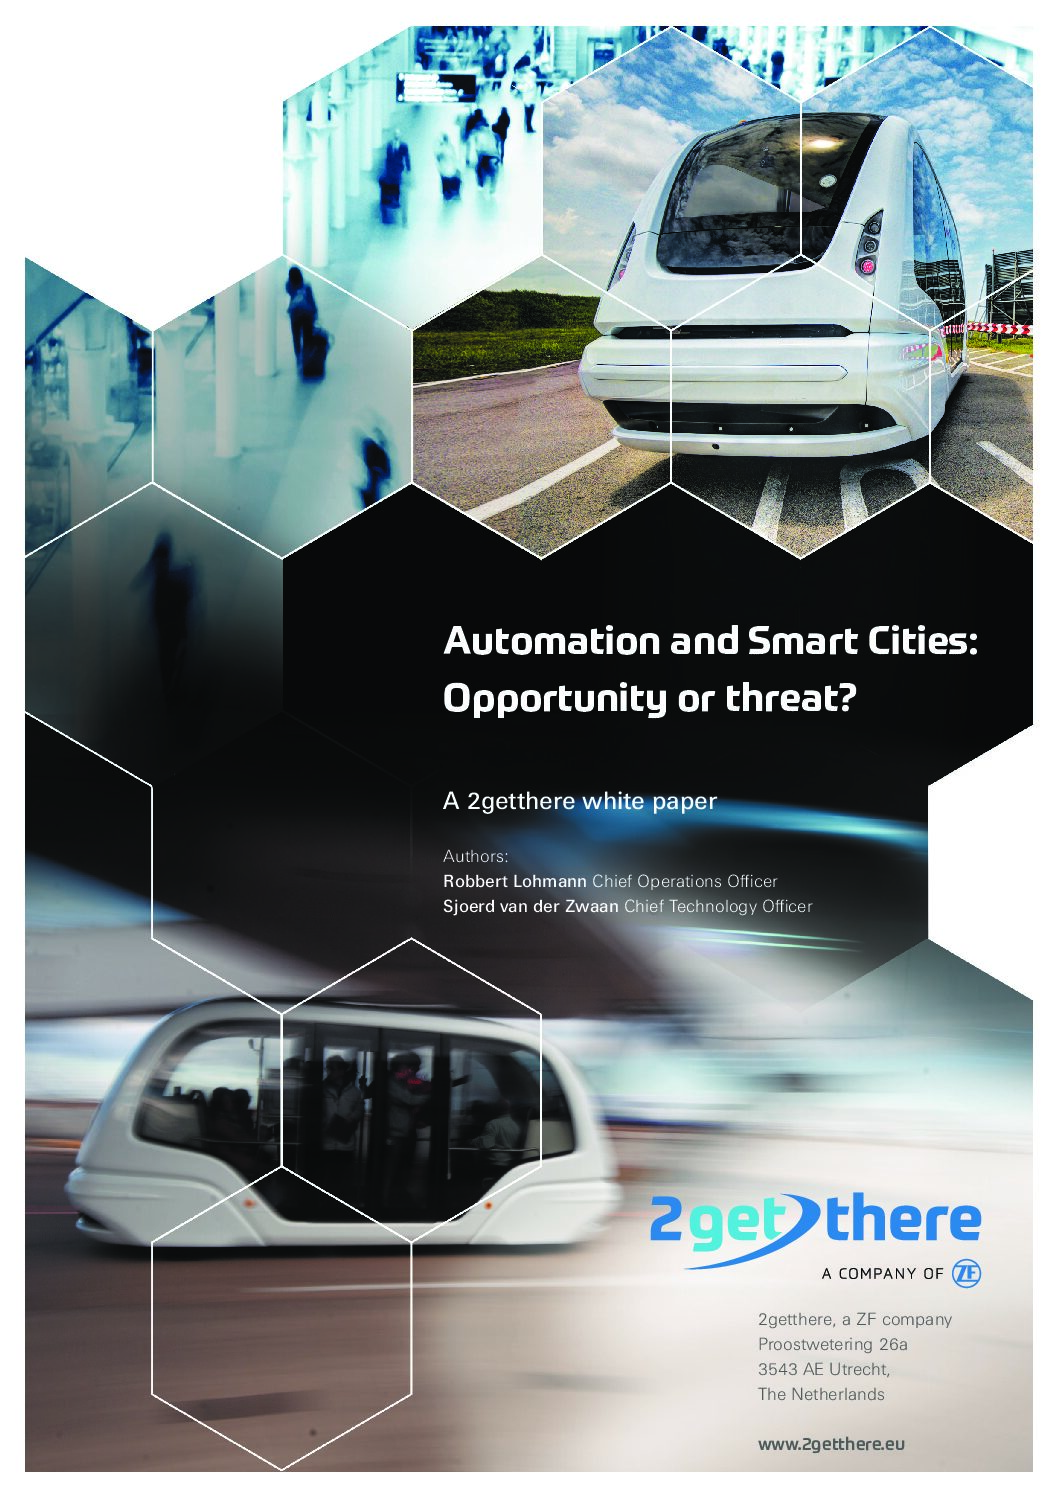 Automation and Smart Cities: Opportunity or Threat?